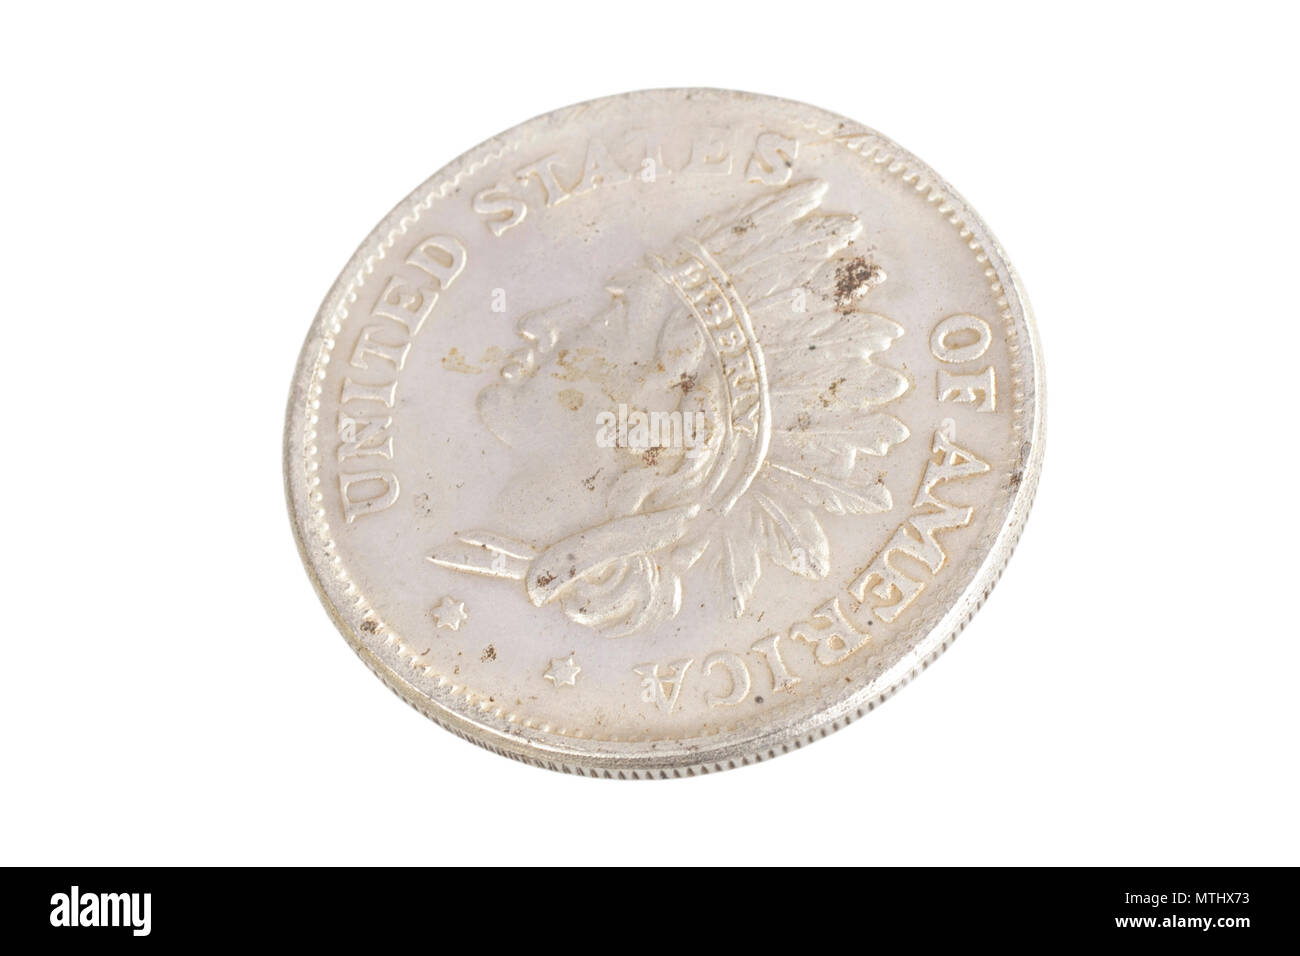 old vintage silver dollar isolated on background - Stock Image